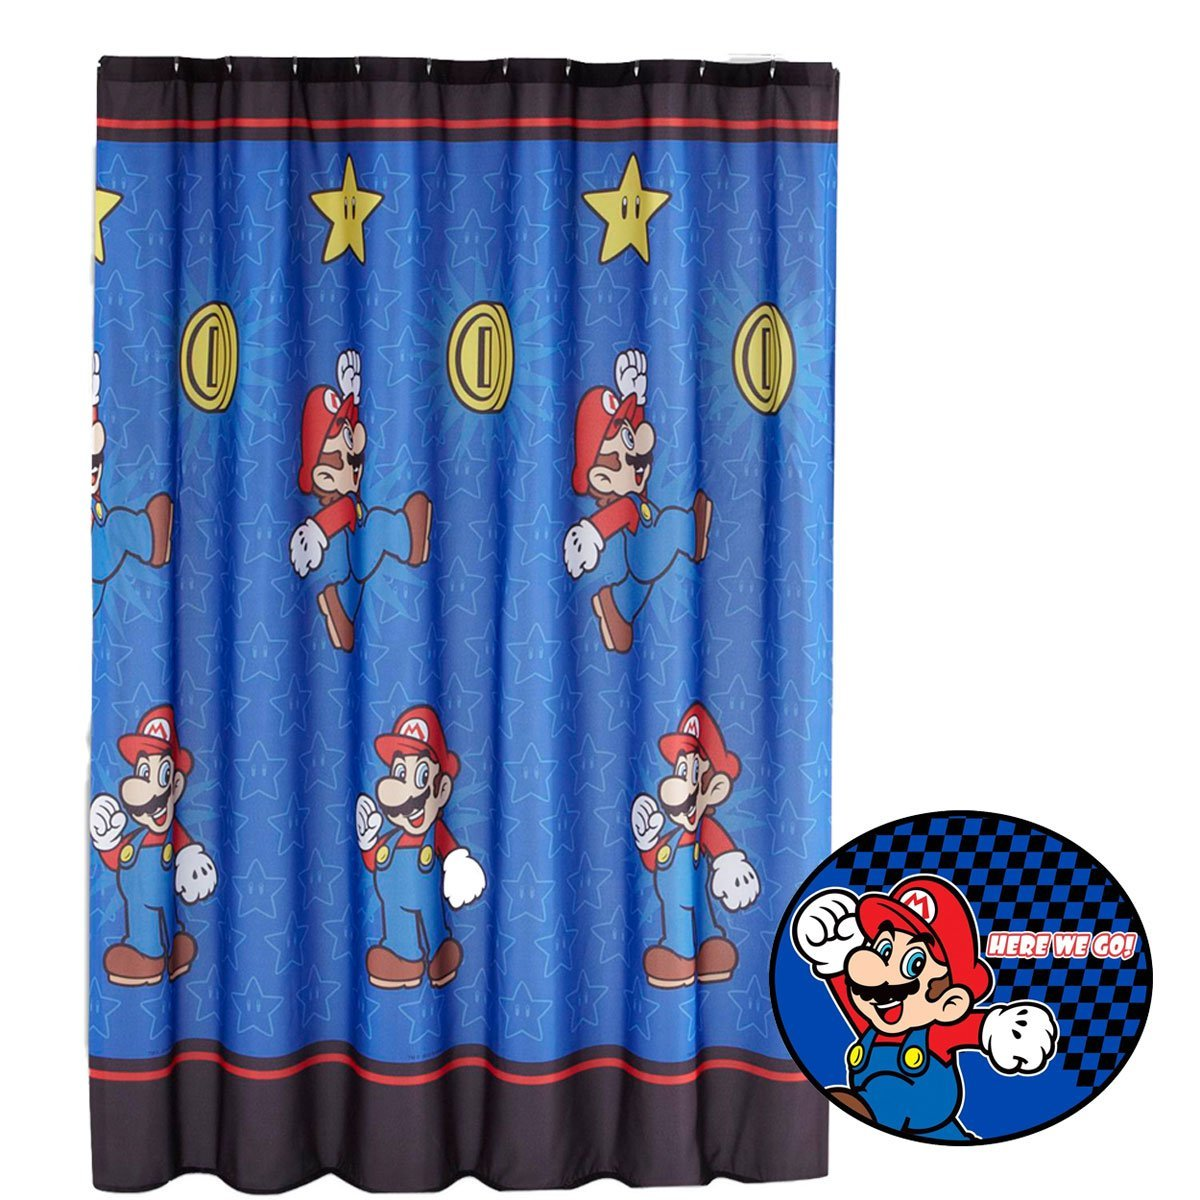 2pc Super Mario Brothers Shower Curtain and Bath Mat Set Nintendo Simply the Best Bathroom Accessories